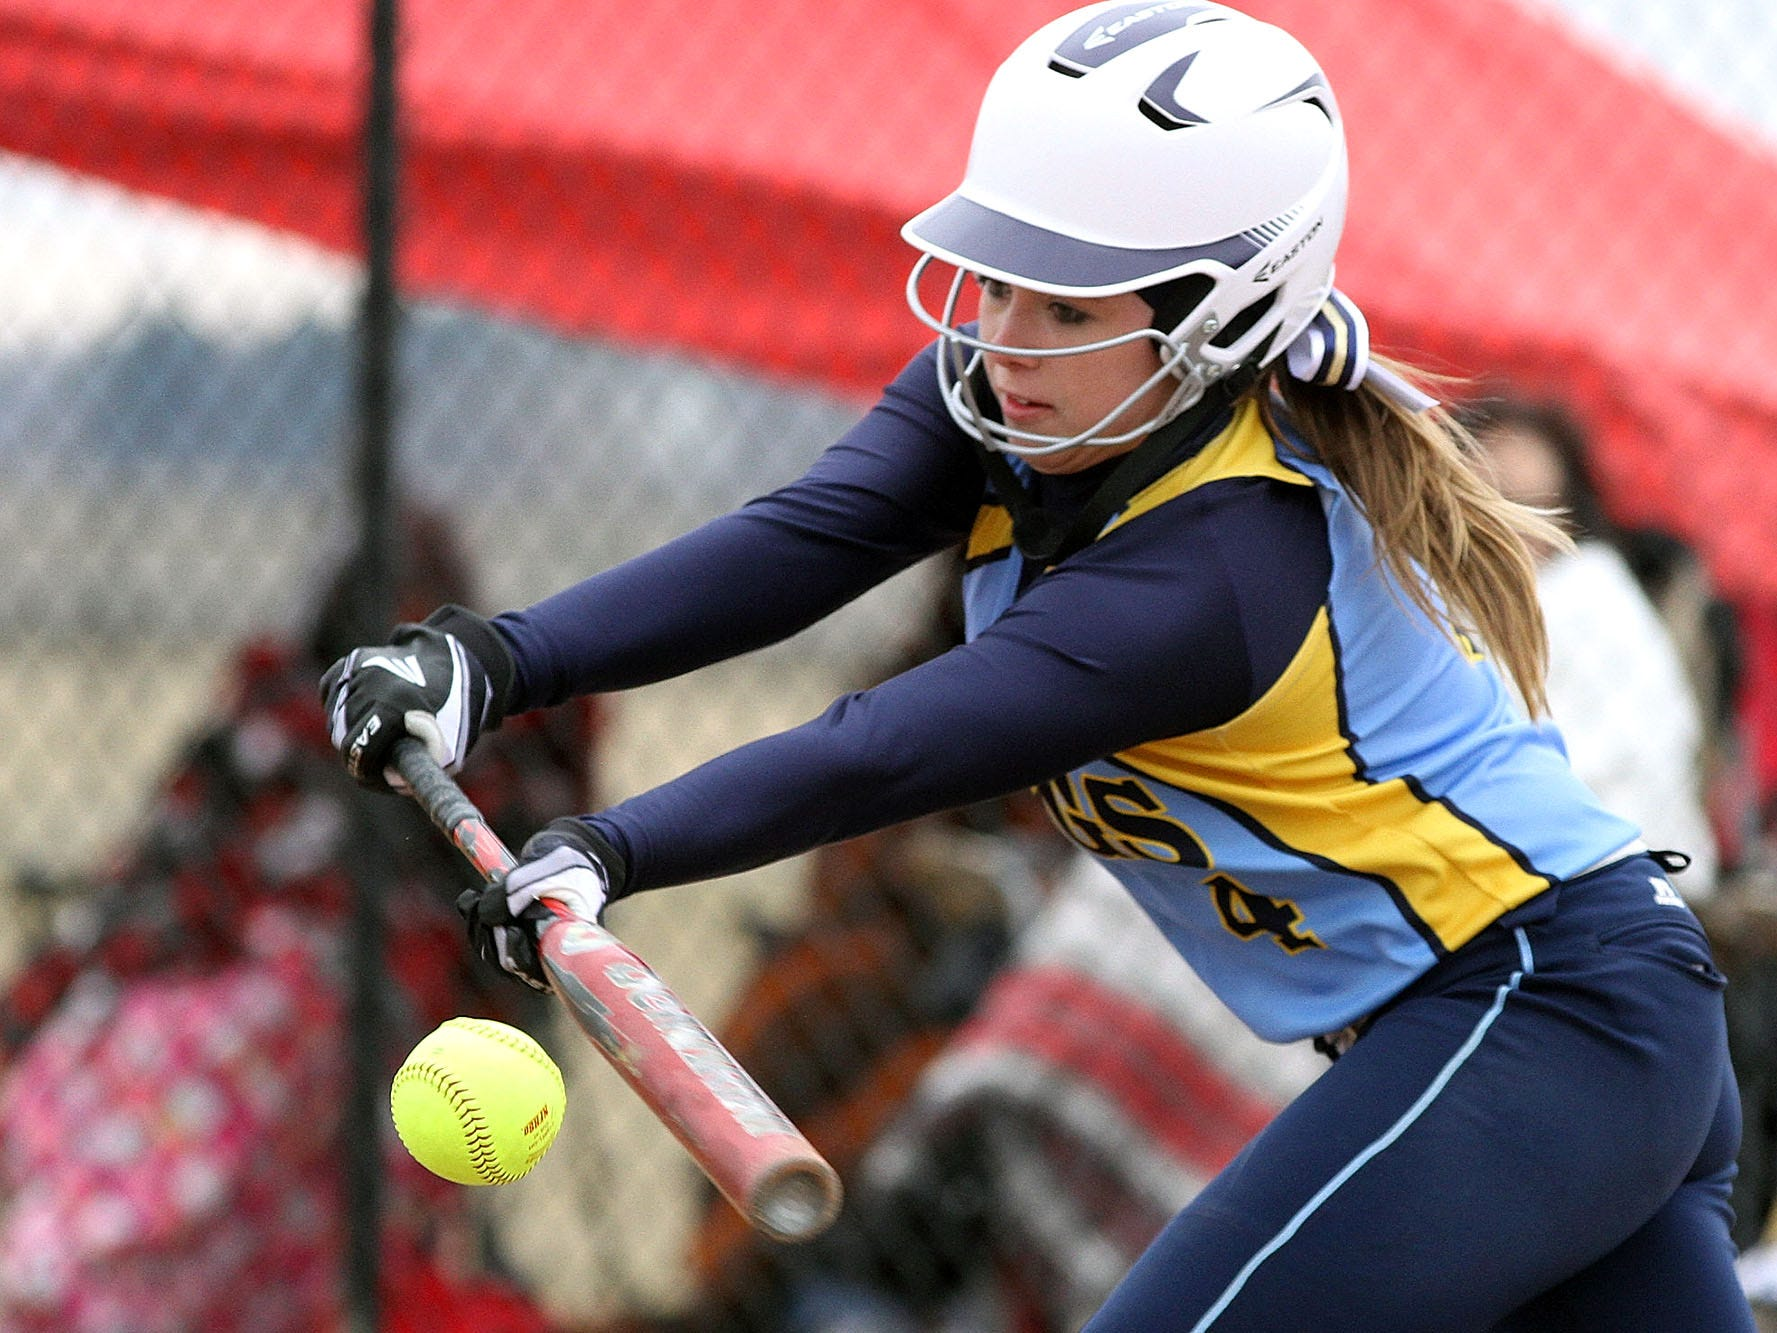 River Valley's Morgan Wit lays down a bunt attempt during a 4-1 victory over Shelby on March 31.